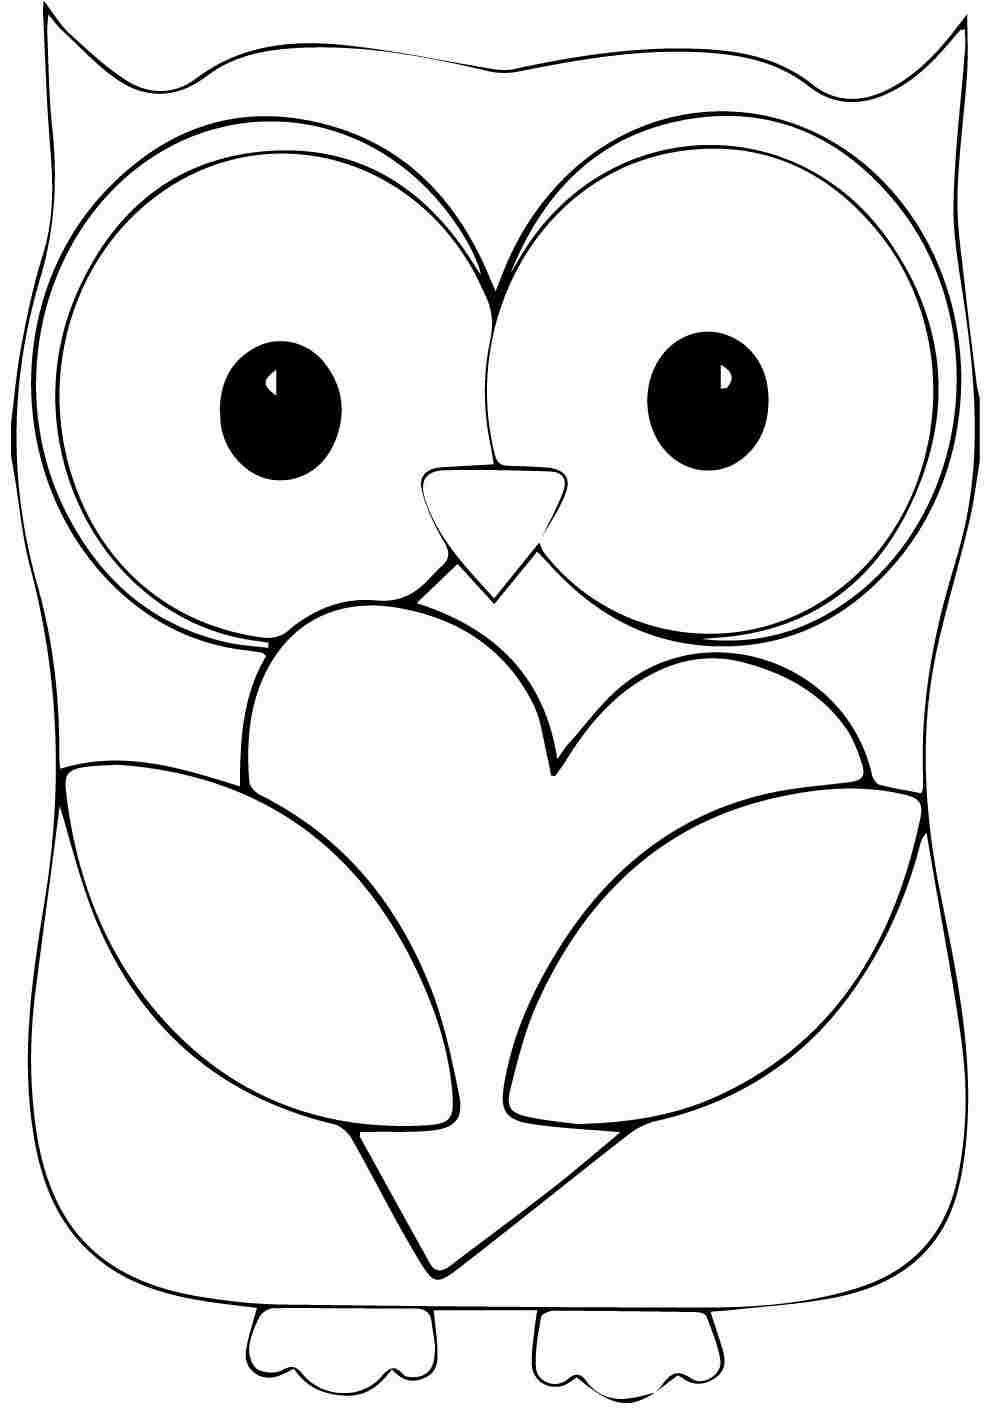 owl print out coloring pages owl coloring pages for adults free detailed owl coloring pages out print owl coloring